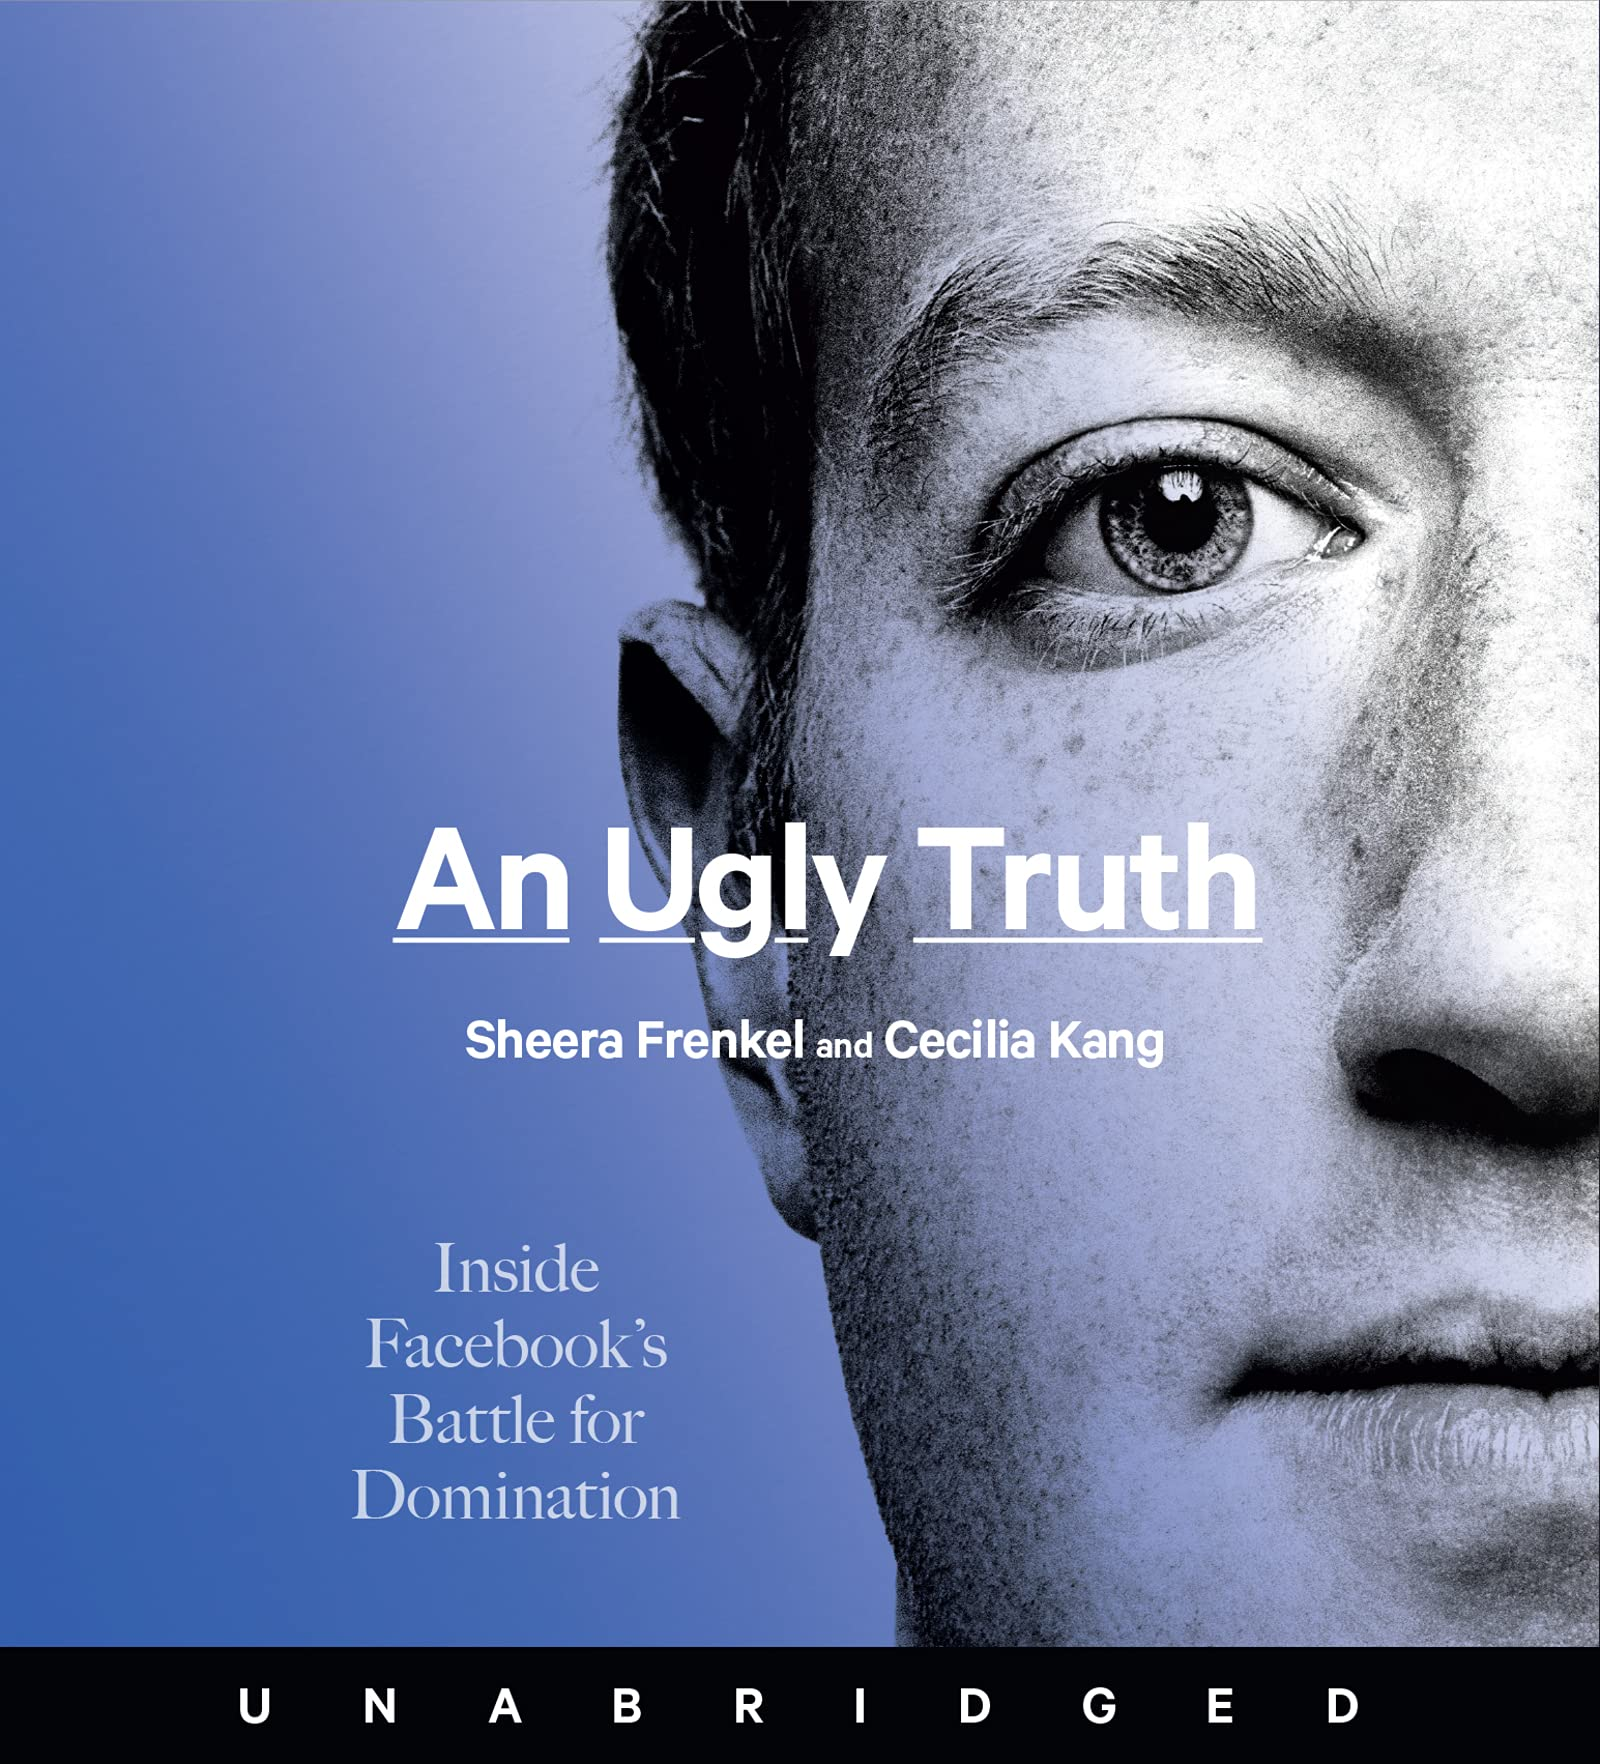 An Ugly Truth CD: Inside Facebook's Battle for Domination